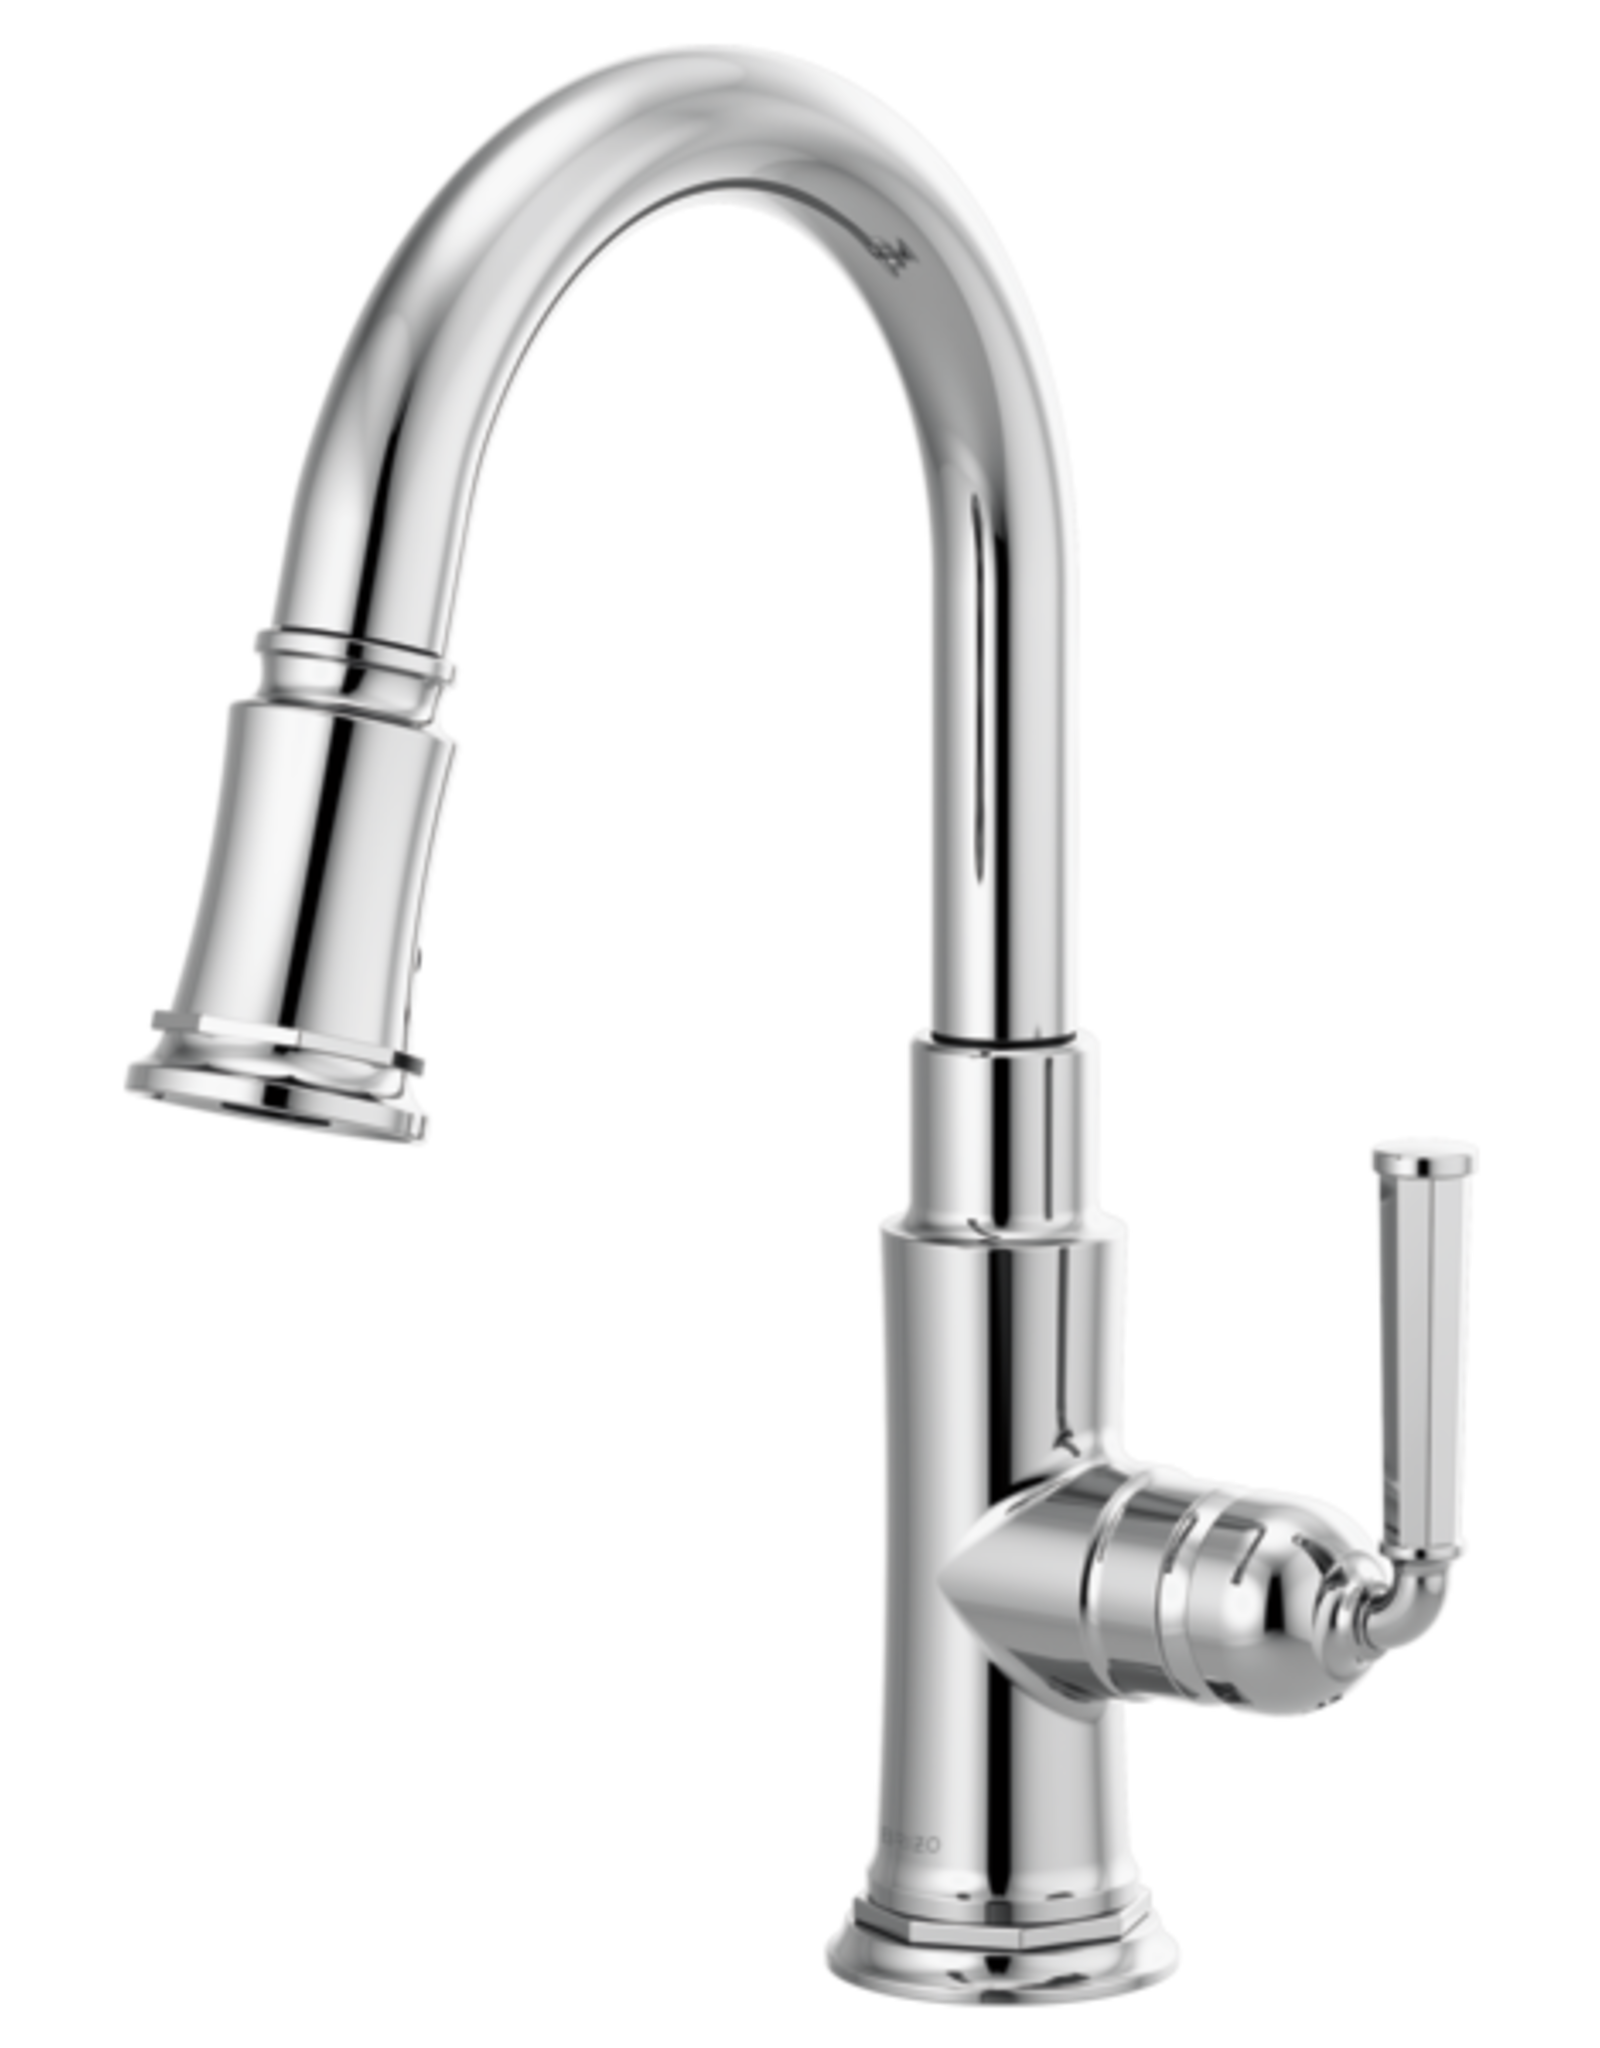 Brizo Brizo Rook Kitchen Faucet Chrome